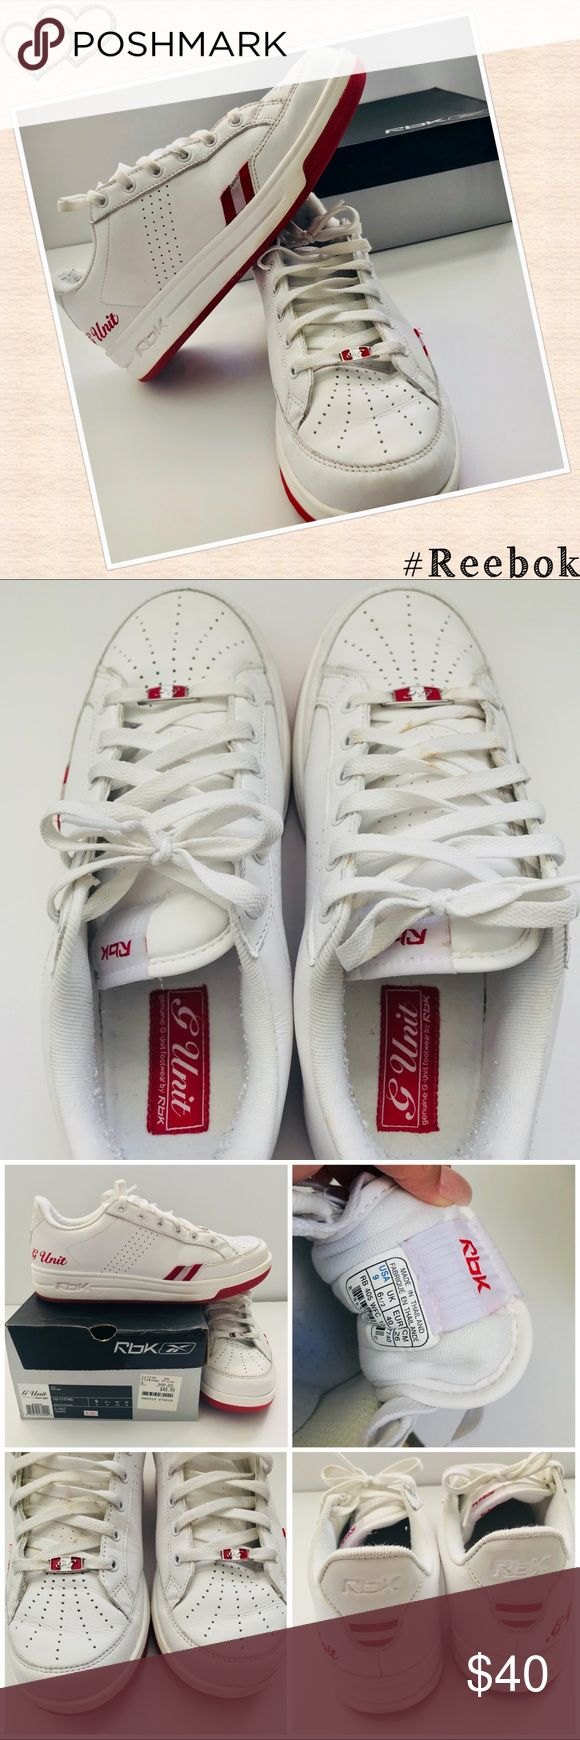 WMNS G Unit Used White & Red G Unit by Rbk. Size 9 US with box. Untreated stains on one shoelace and one side of one sneaker shown on last picture. Reebok Shoes Sneakers